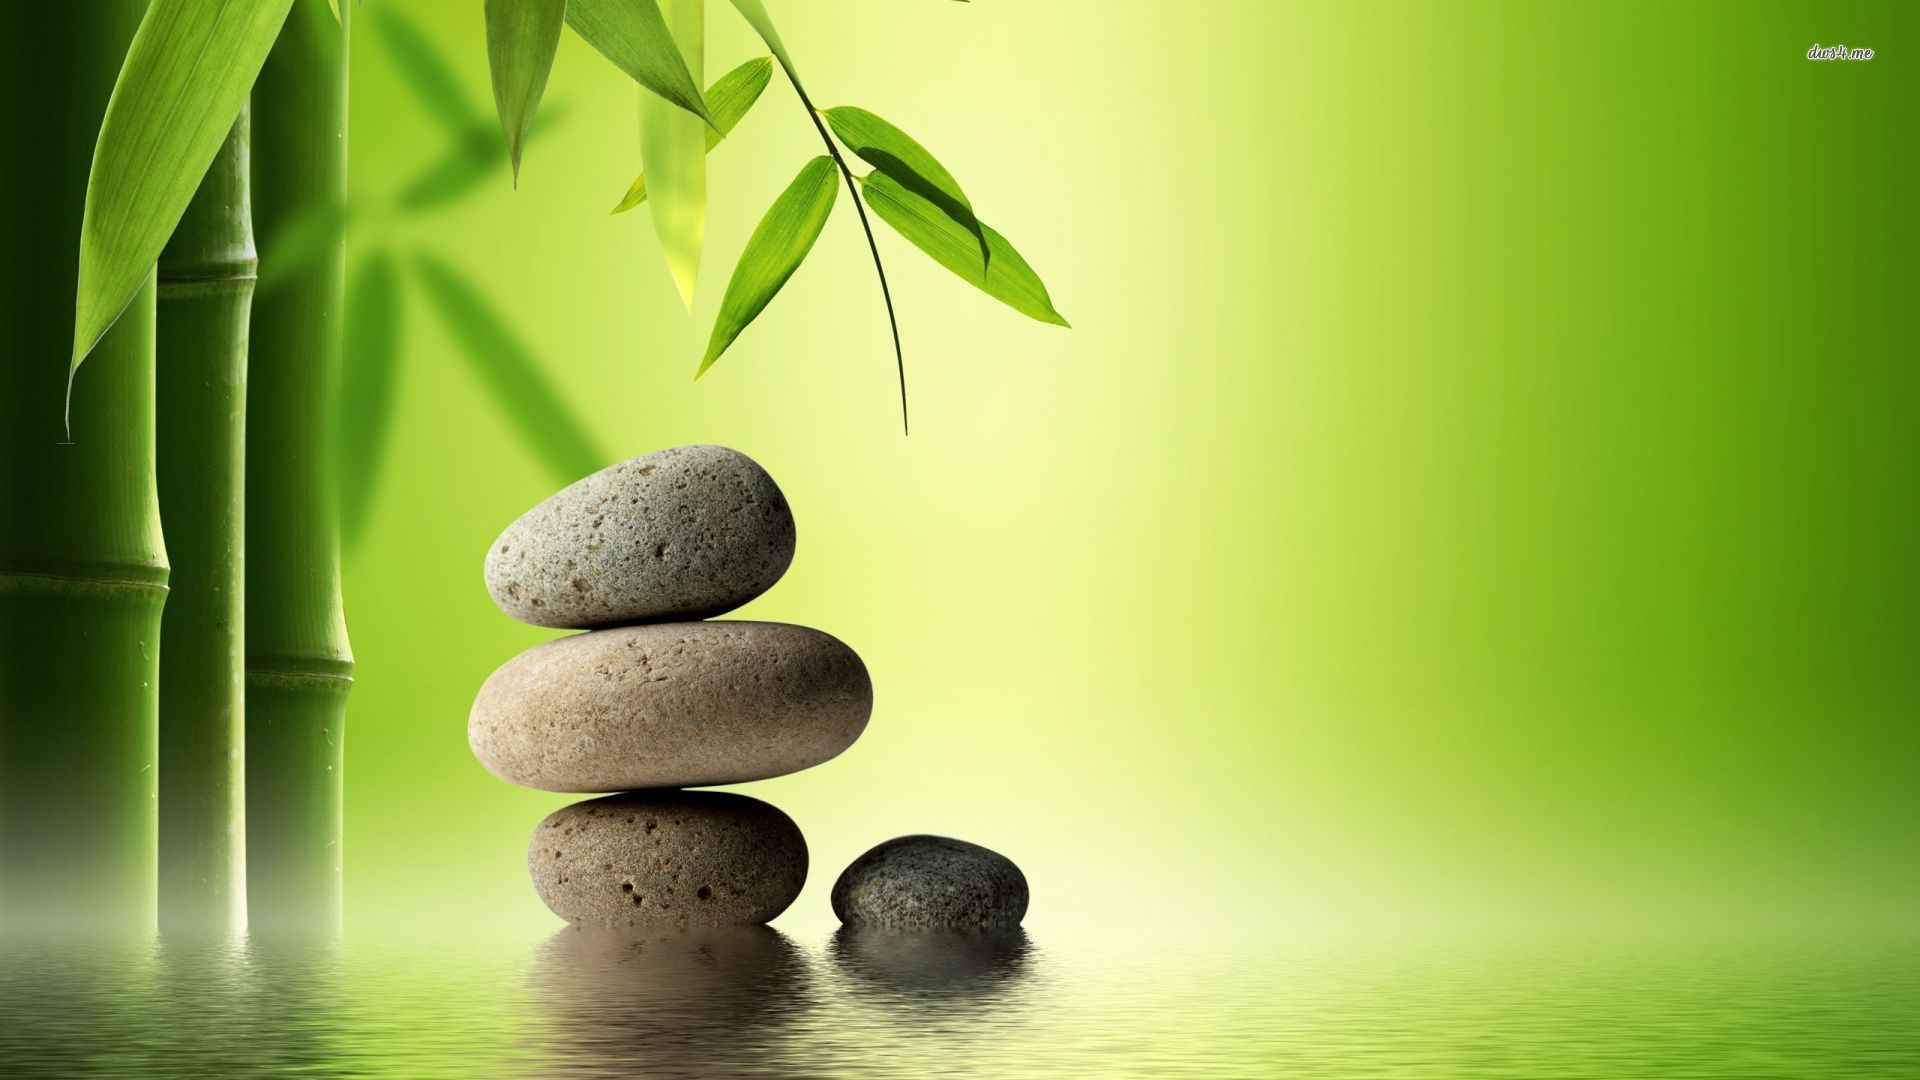 Bamboo Zen Stone Wallpaper High Resolution Wallpaper Full ...